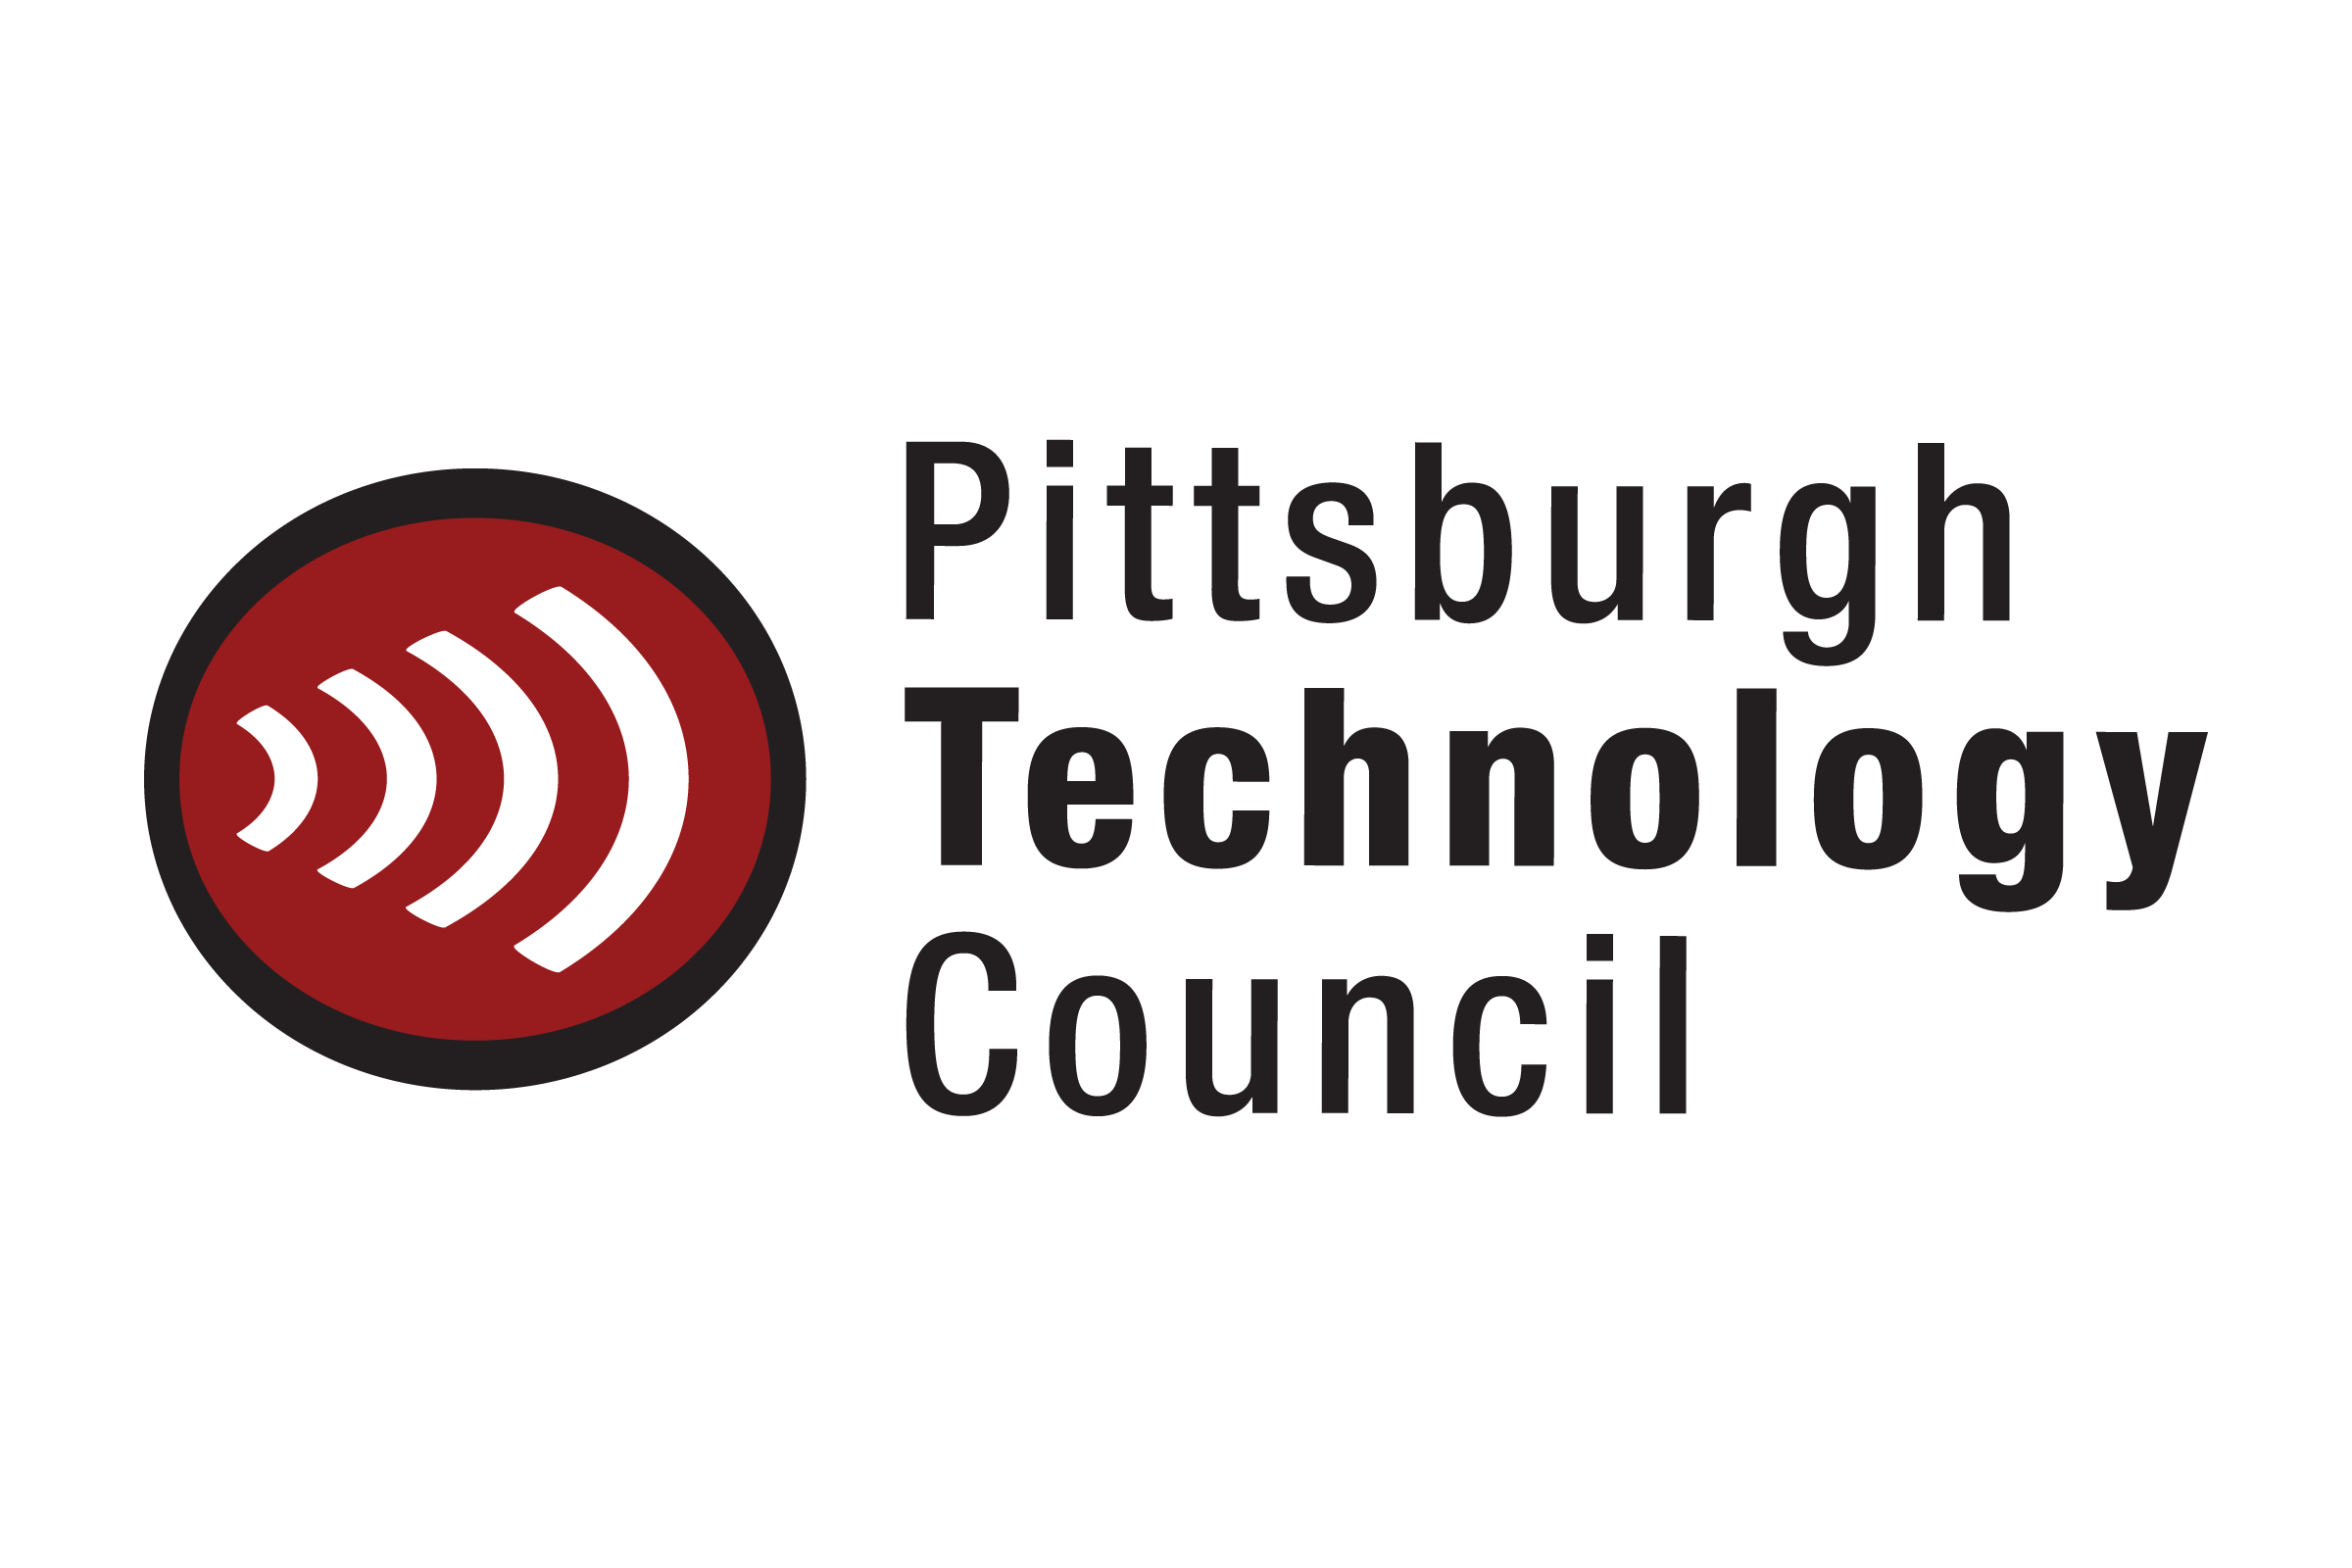 PittsburghTechnologyCouncil_logo.png